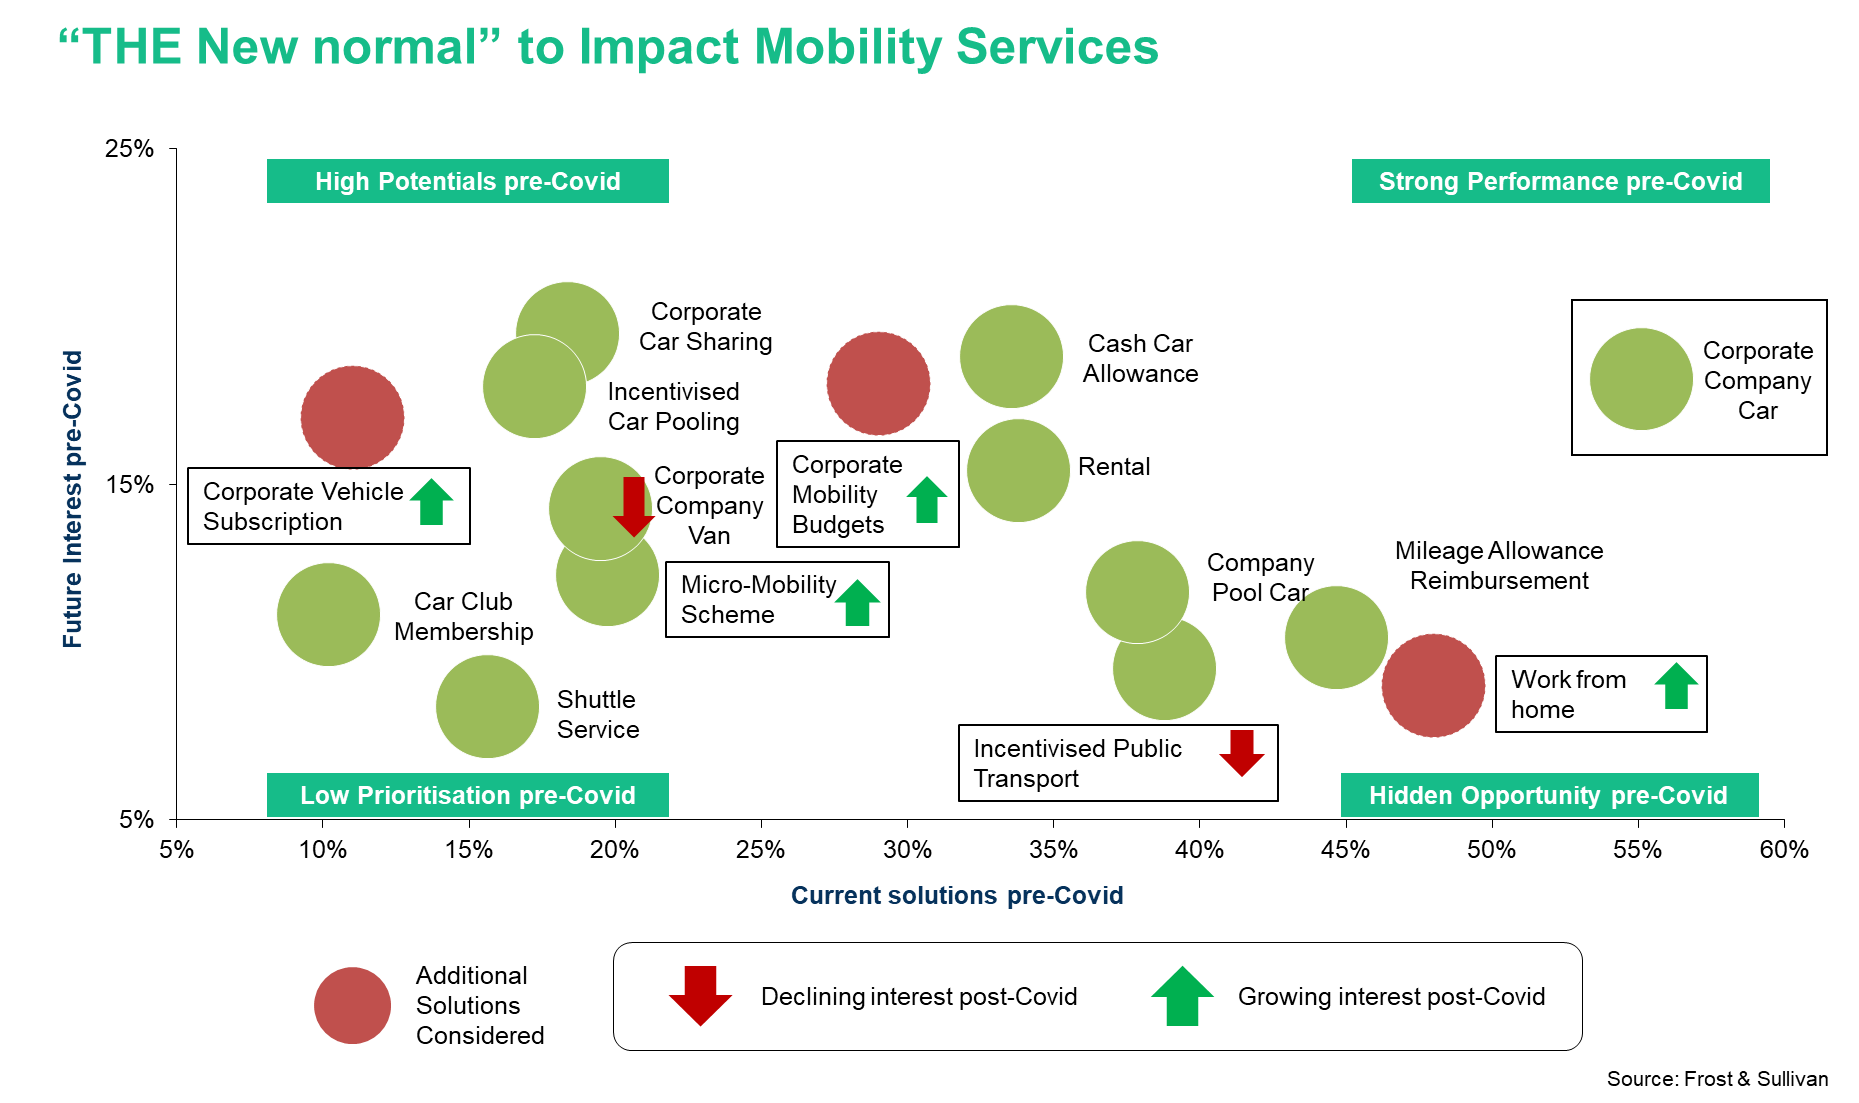 Impact Mobility Services